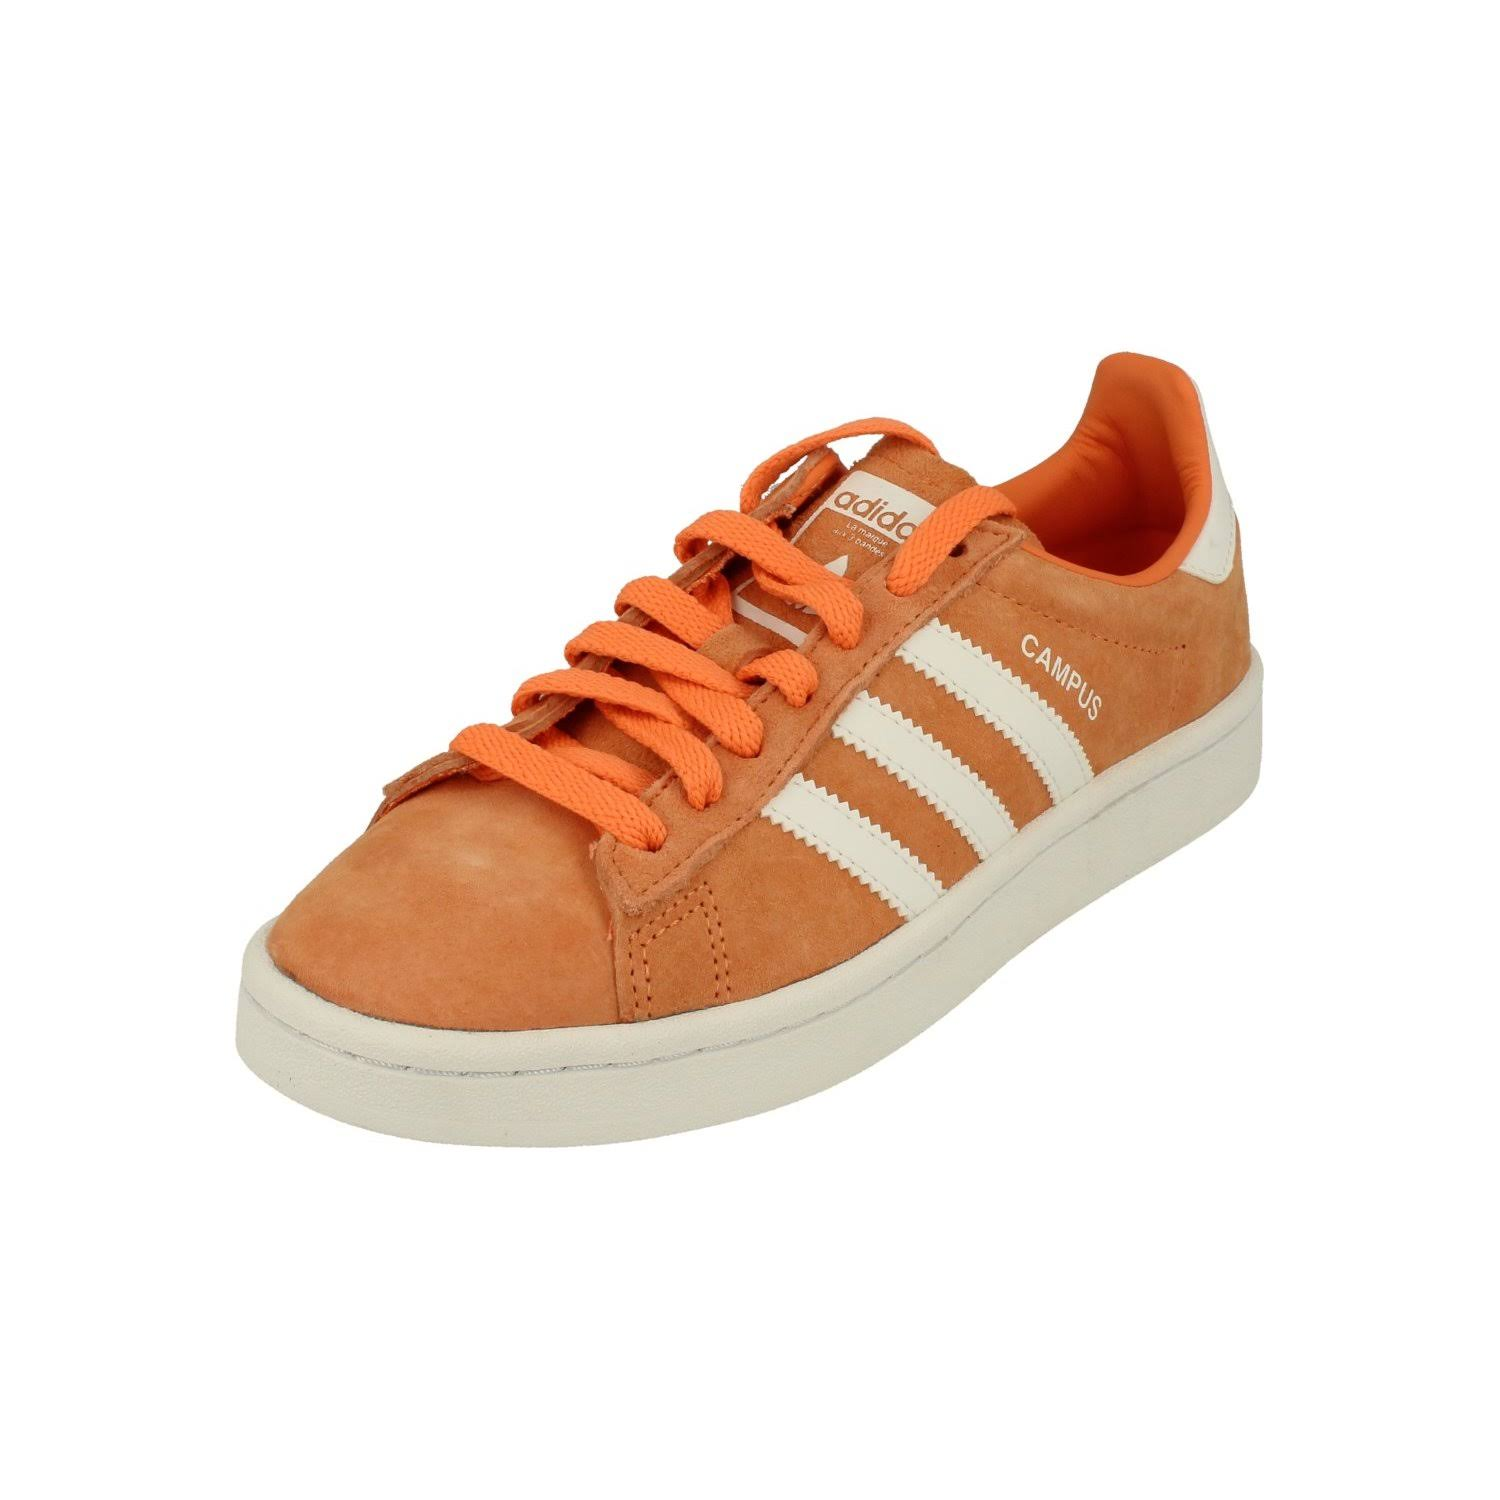 (6.5) Adidas Originals Campus Mens Trainers Sneakers